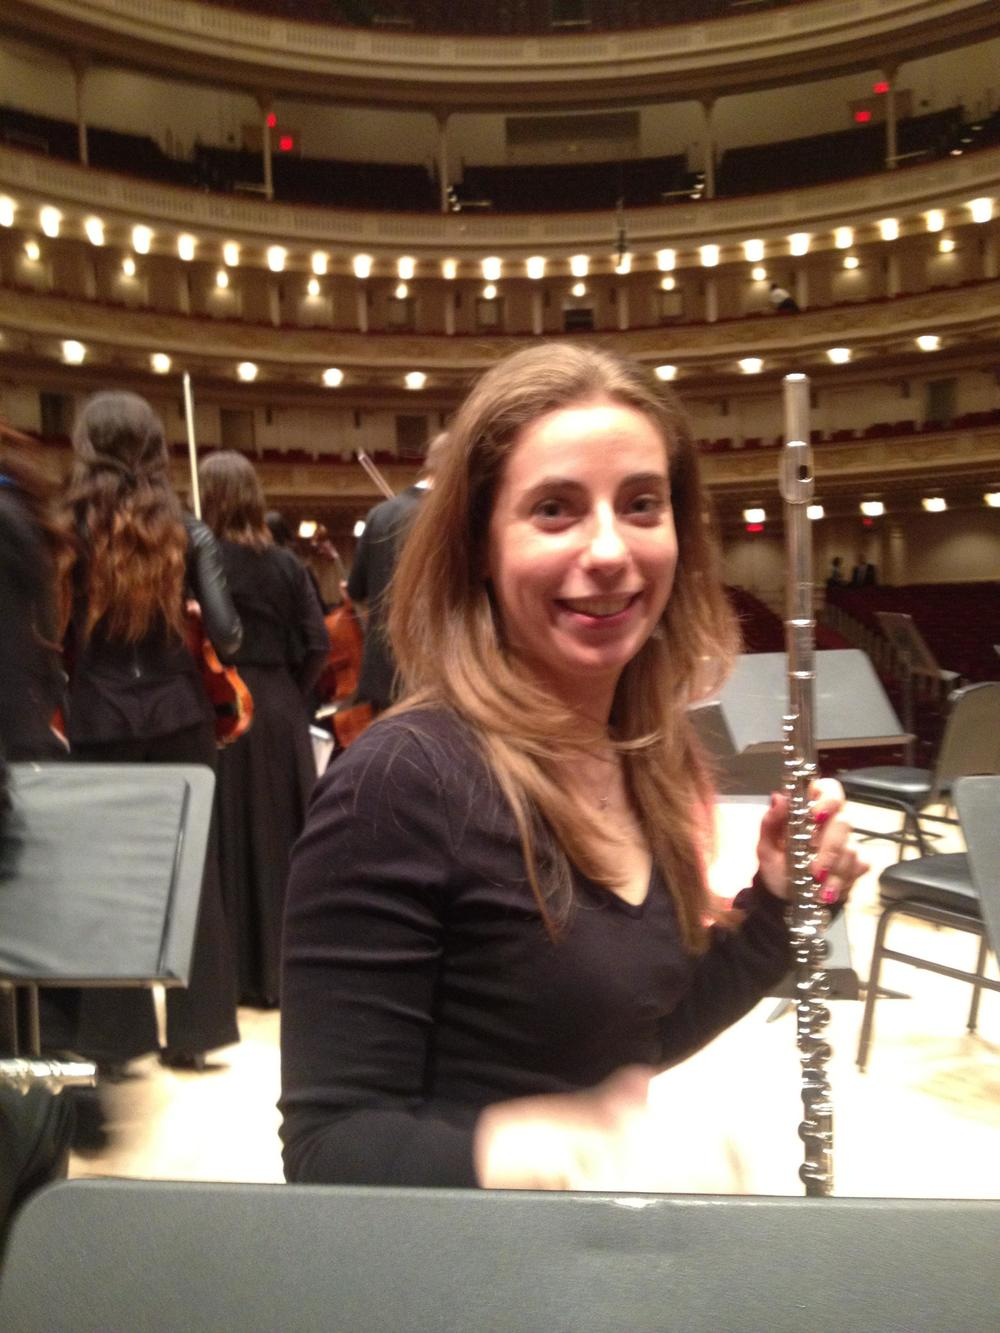 Layo Alum Elizabeth Erenberg recently received a Masters Degree from New England Conservatory and is now a professional flutist in Boston. She too played with us at Carnegie. Both Elizabeth and Niv are shining examples of the vision of the Los Angeles Youth Orchestra to instill a love for music that lasts a lifetime.